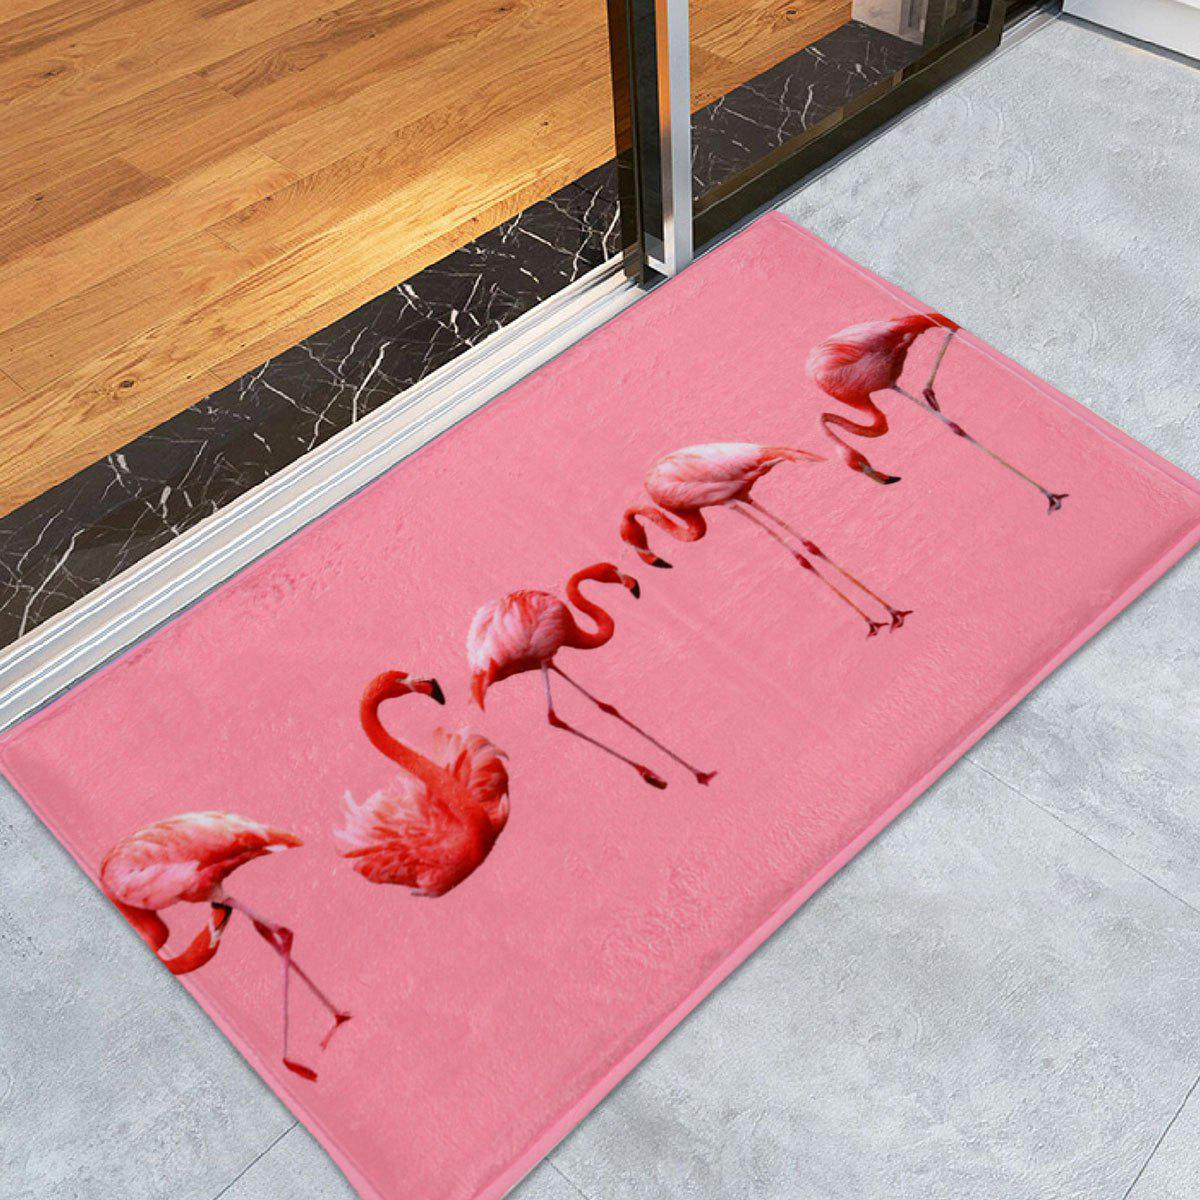 Flamingo Floor Coral Velvet Bath RugHOME<br><br>Size: W24 INCH * L35.5 INCH; Color: PINK; Products Type: Bath rugs; Materials: Coral FLeece; Pattern: Animal; Style: Trendy; Shape: Rectangle; Package Contents: 1 x Rug;